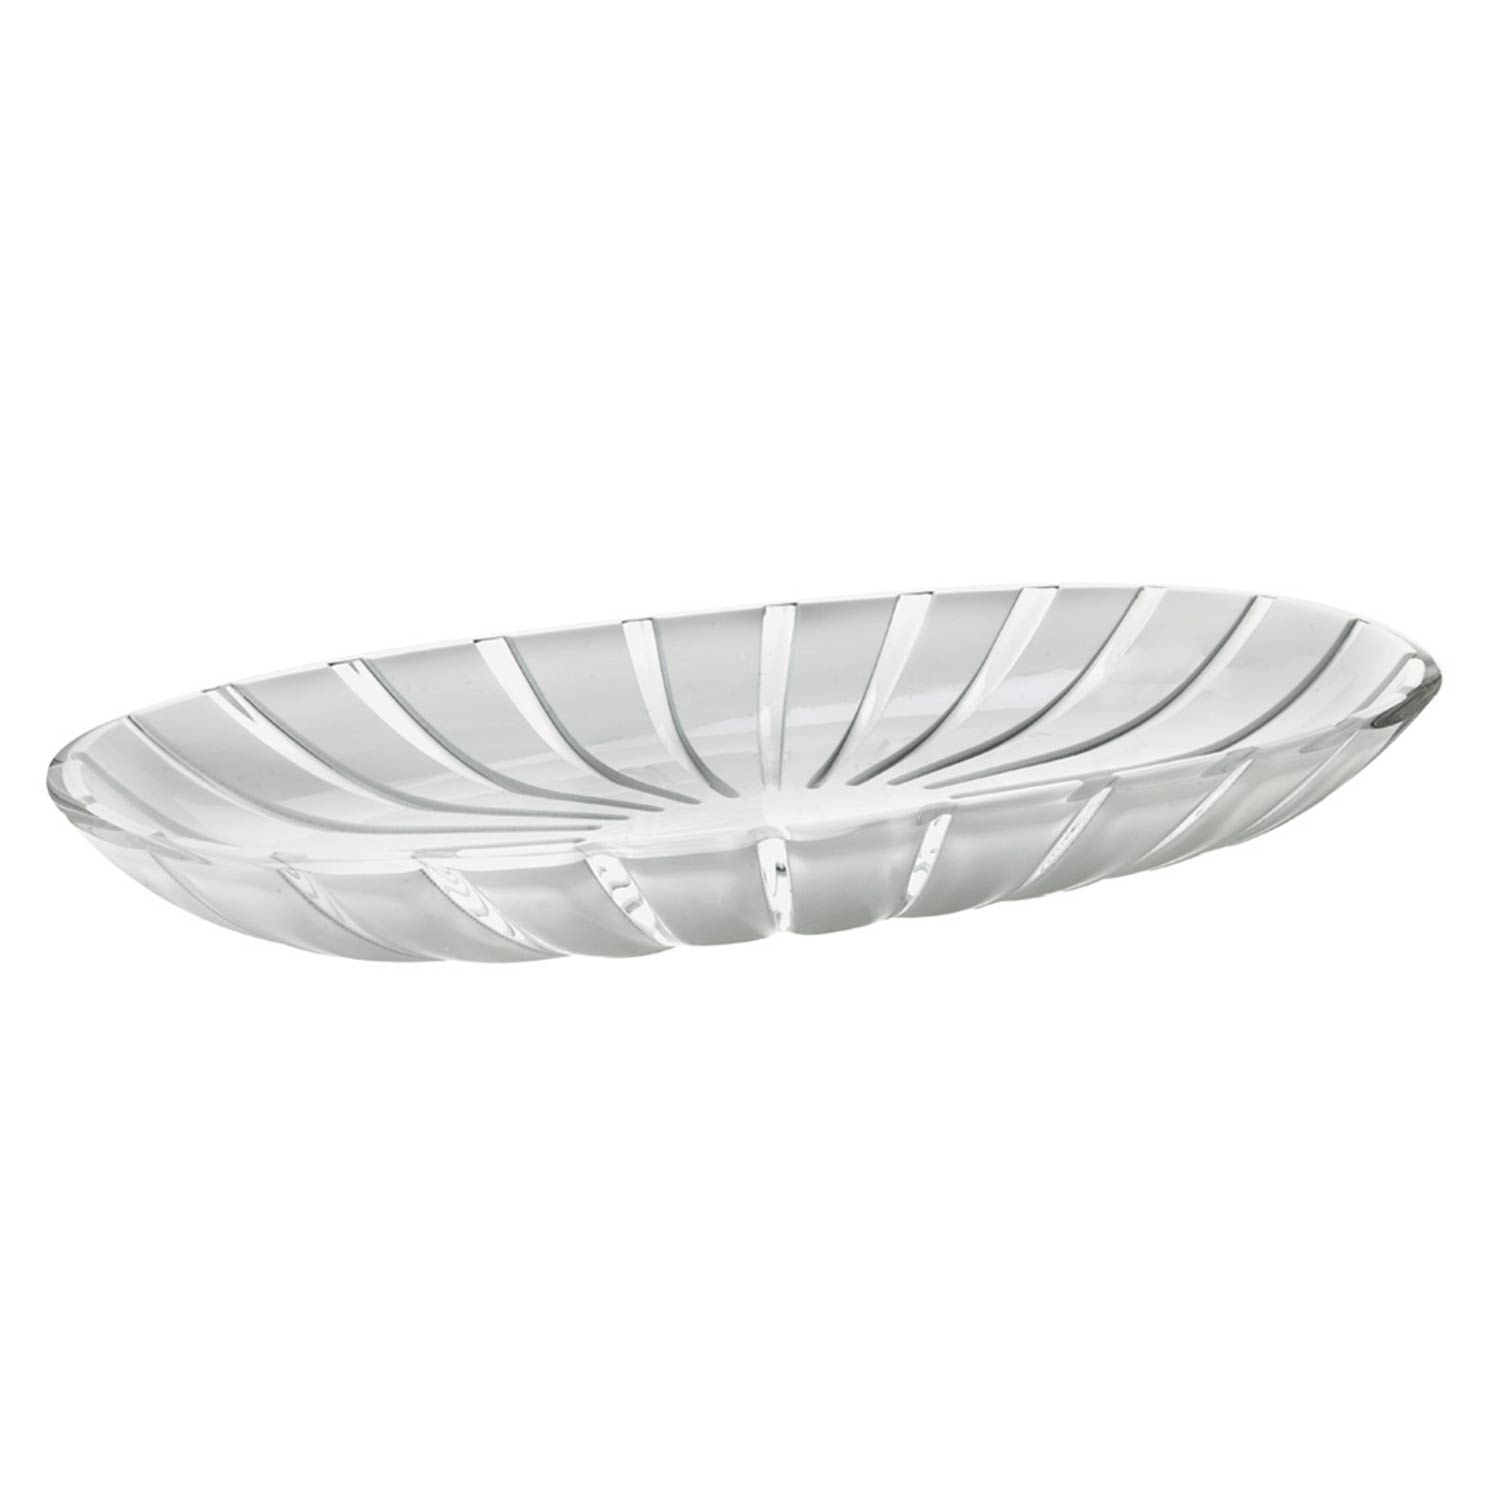 guzzini serving tray clear